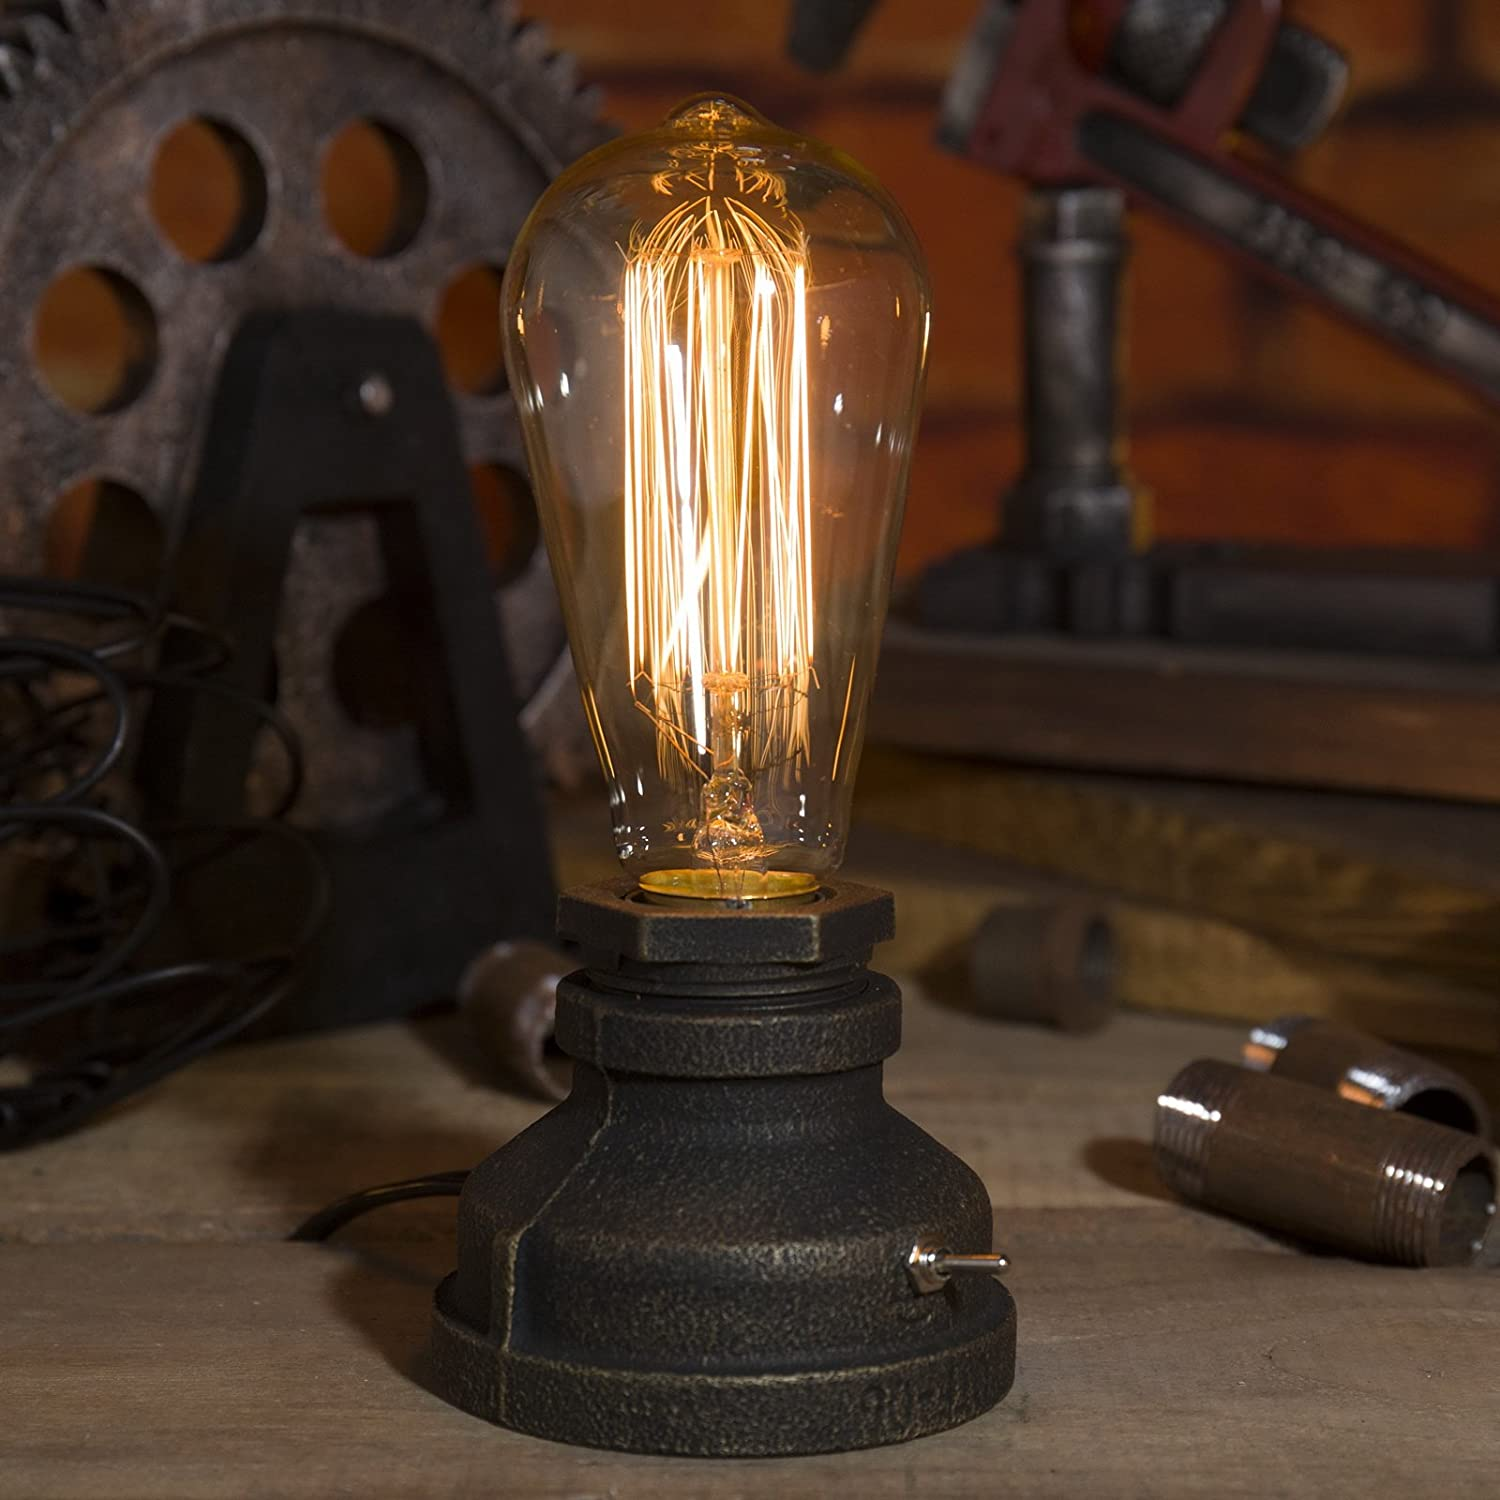 Vintage Industrial Style Metal Pipe Table Desk Lamp Light with Edison Bulb Adjustable12